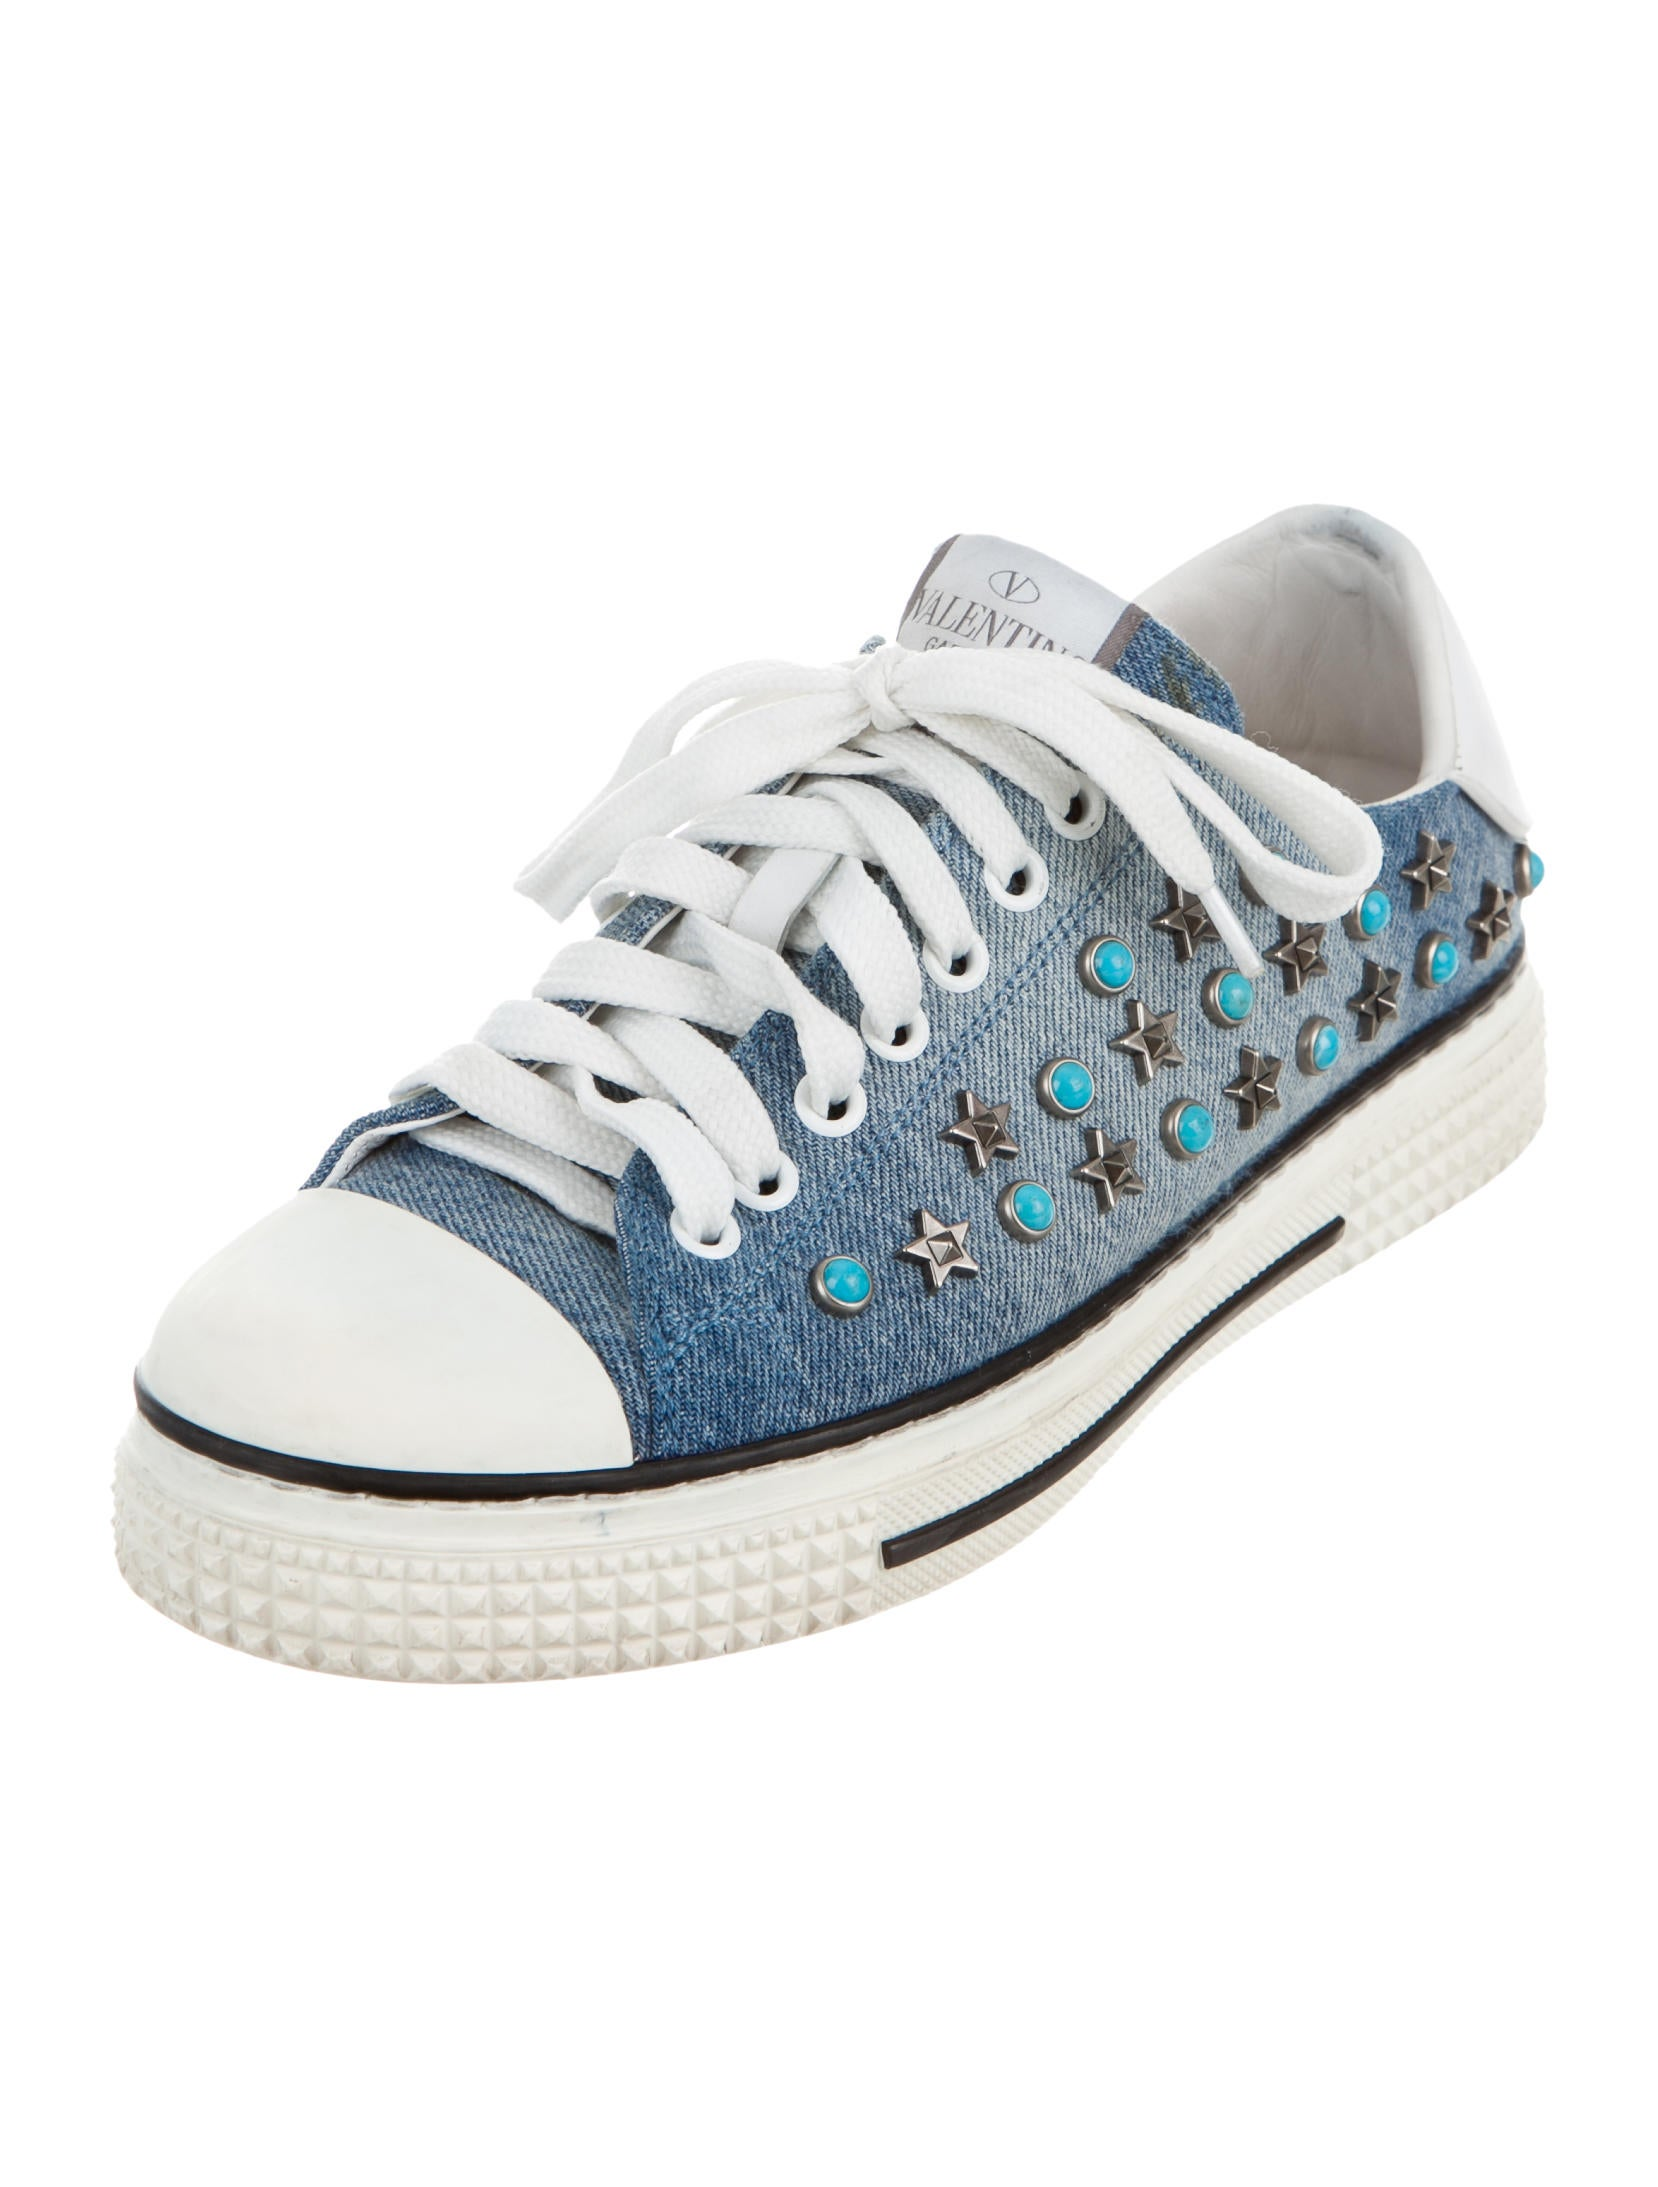 Valentino Star Studded Sneakers Shoes Val62534 The